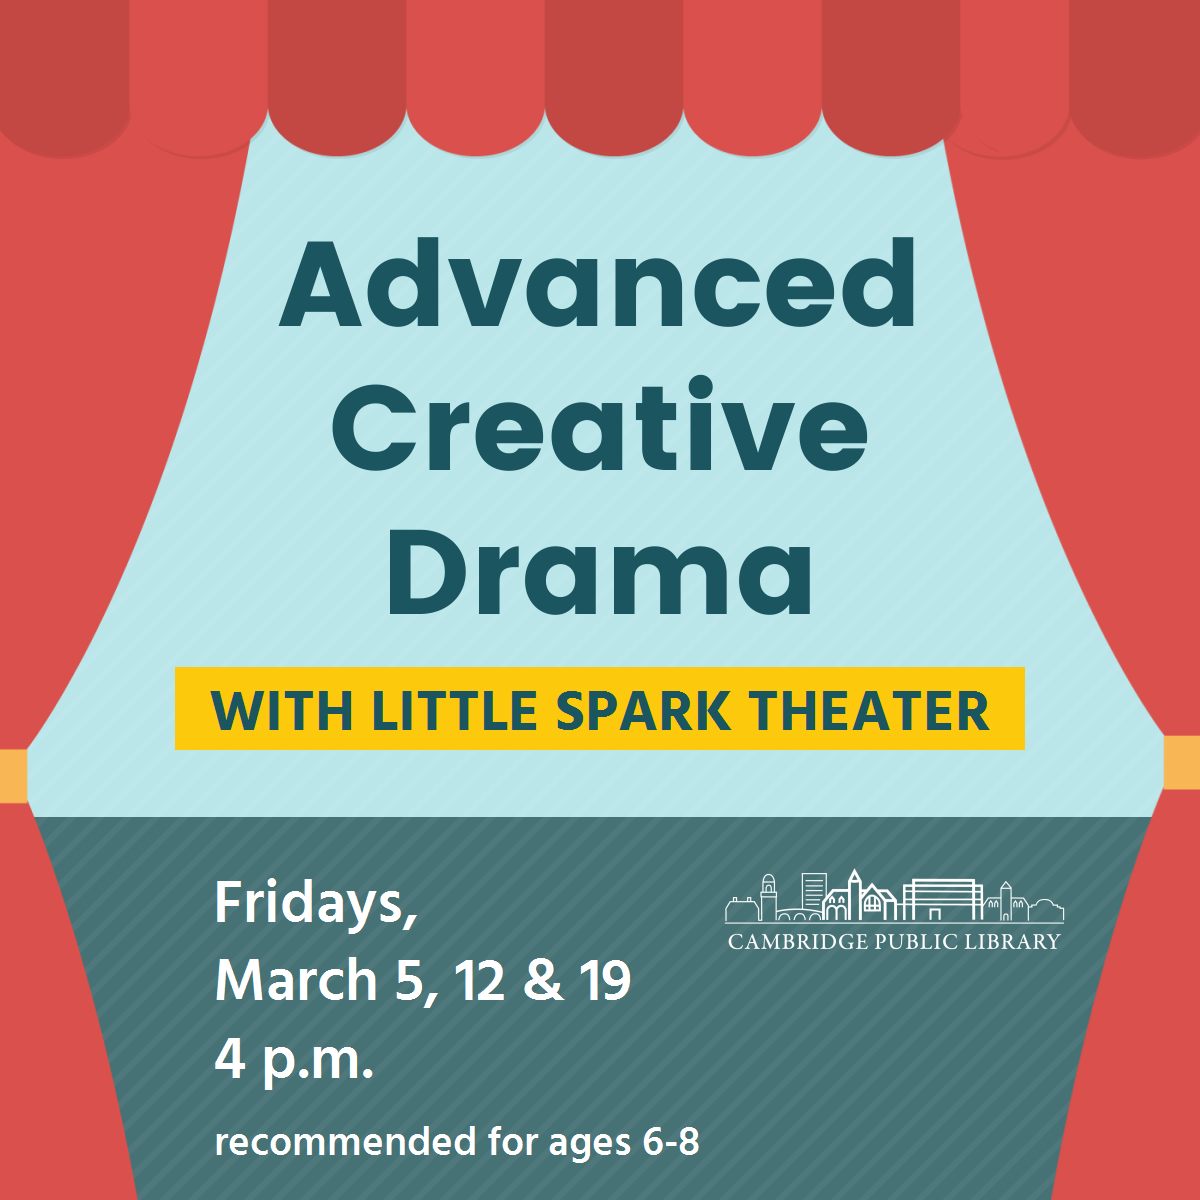 Advanced Creative Drama with Little Spark Theater